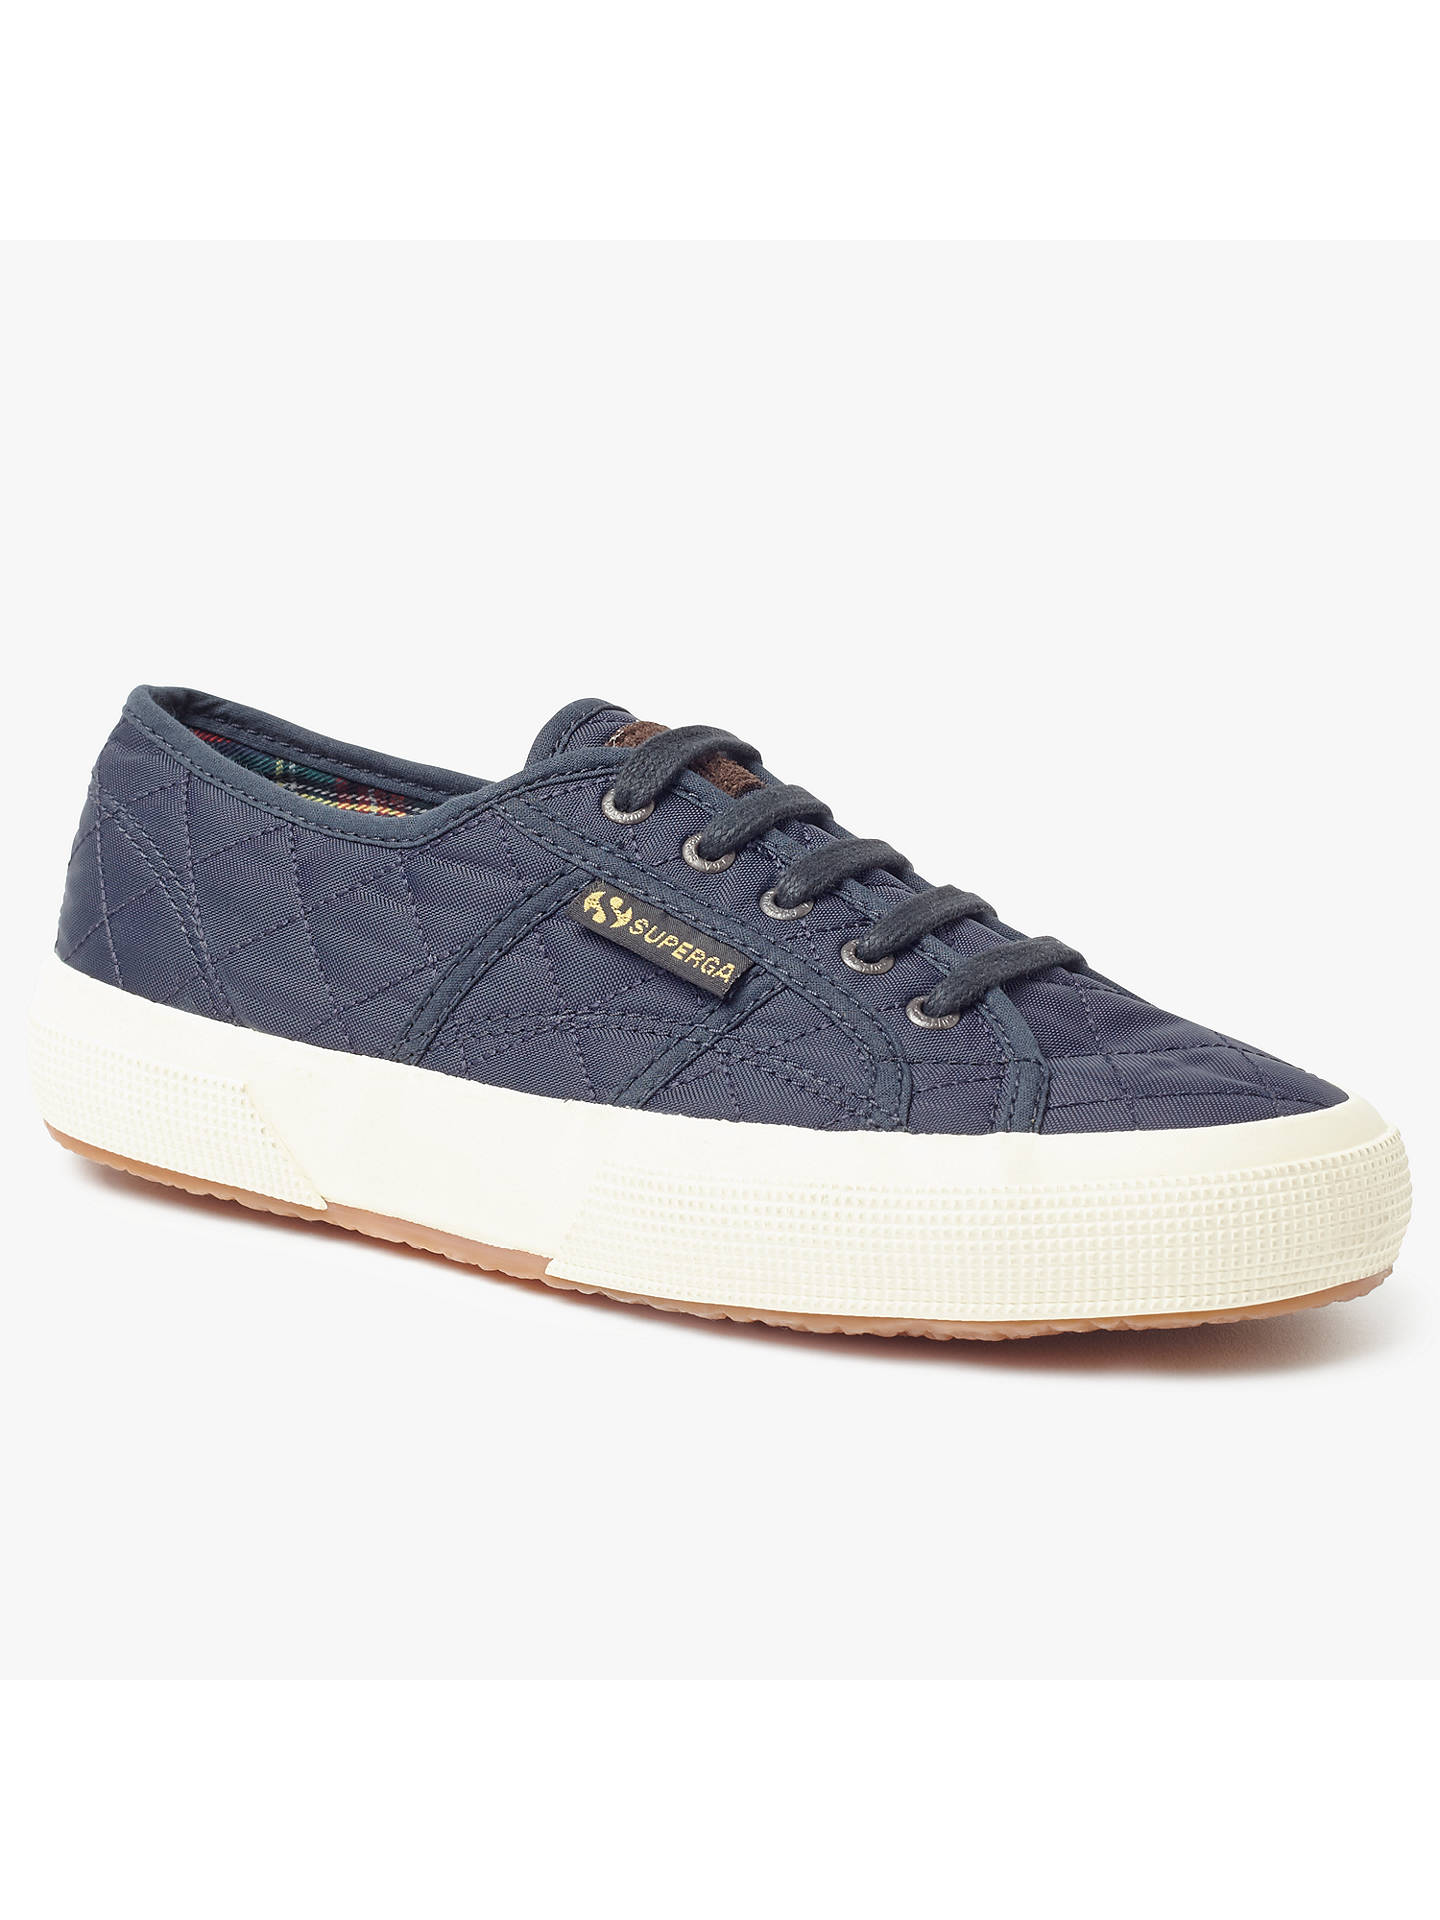 ce2dba23206b Buy Superga 2750 Quilted Lace Up Plimsolls